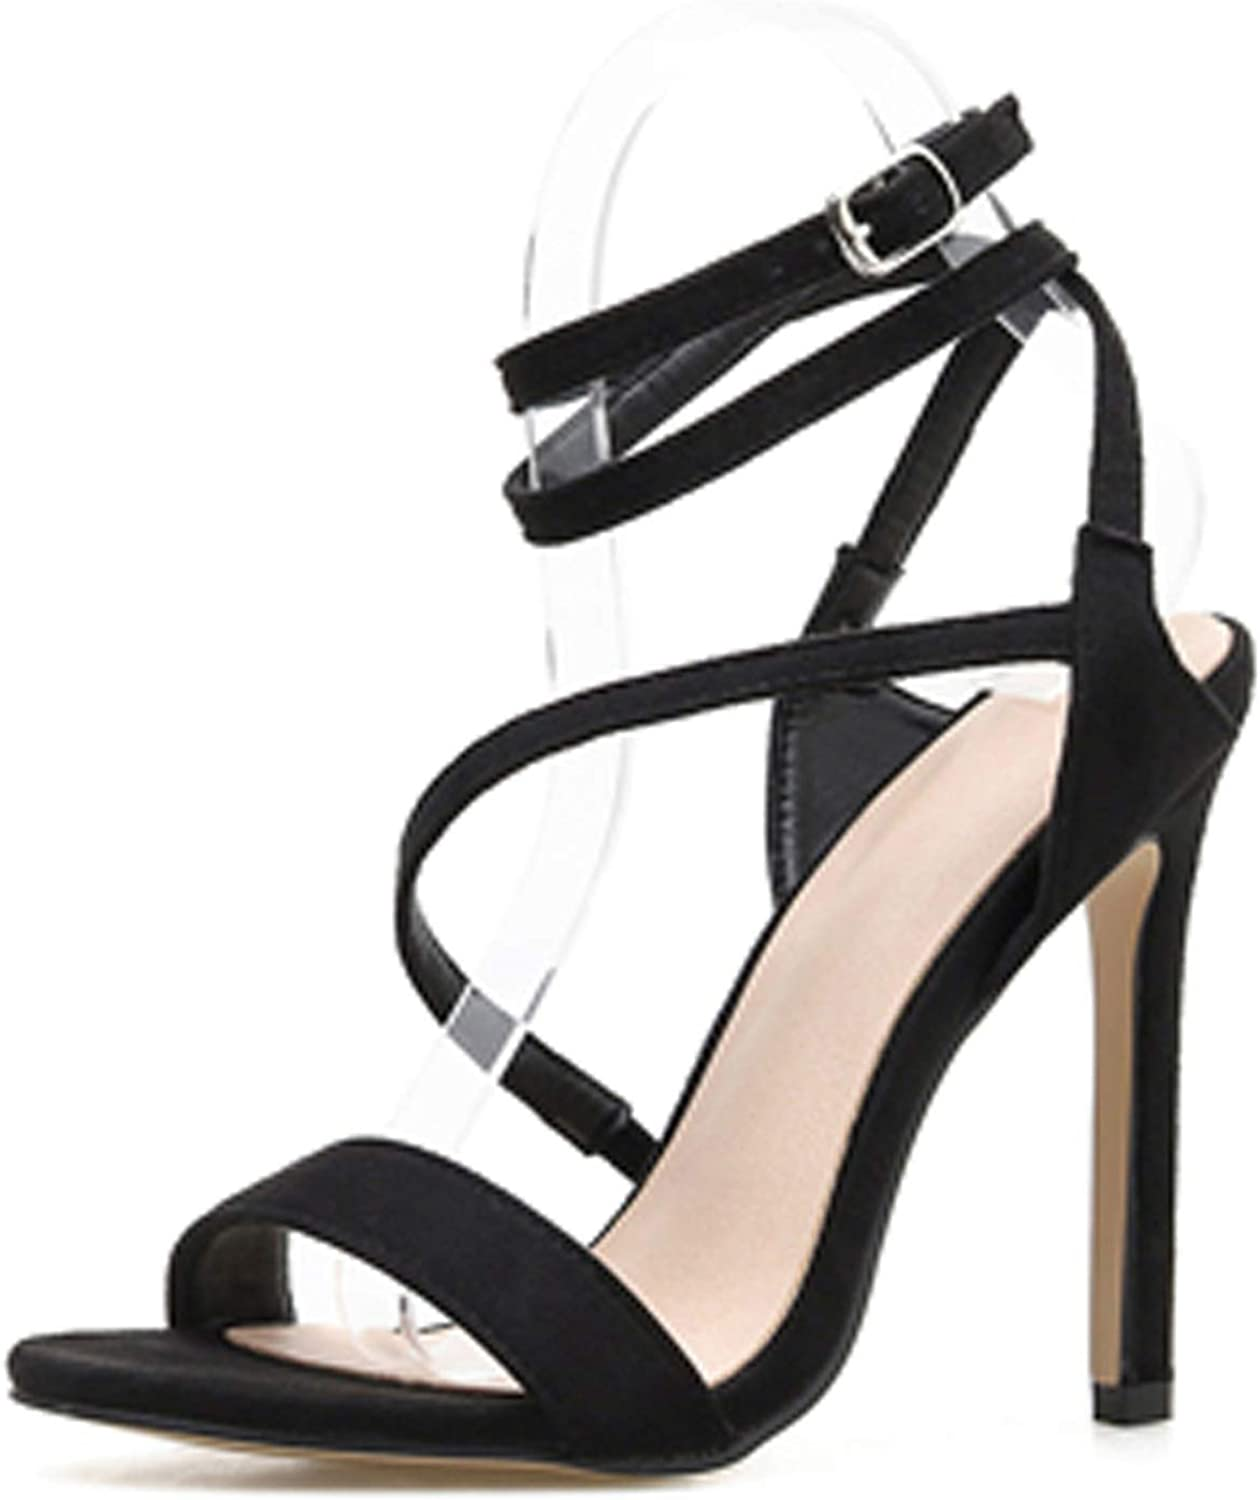 Ches 2019 Heel Gladiator Women Sandals Thin Heel Buckle Strap Rome Party shoes Black Serpentine Fashion Sandals